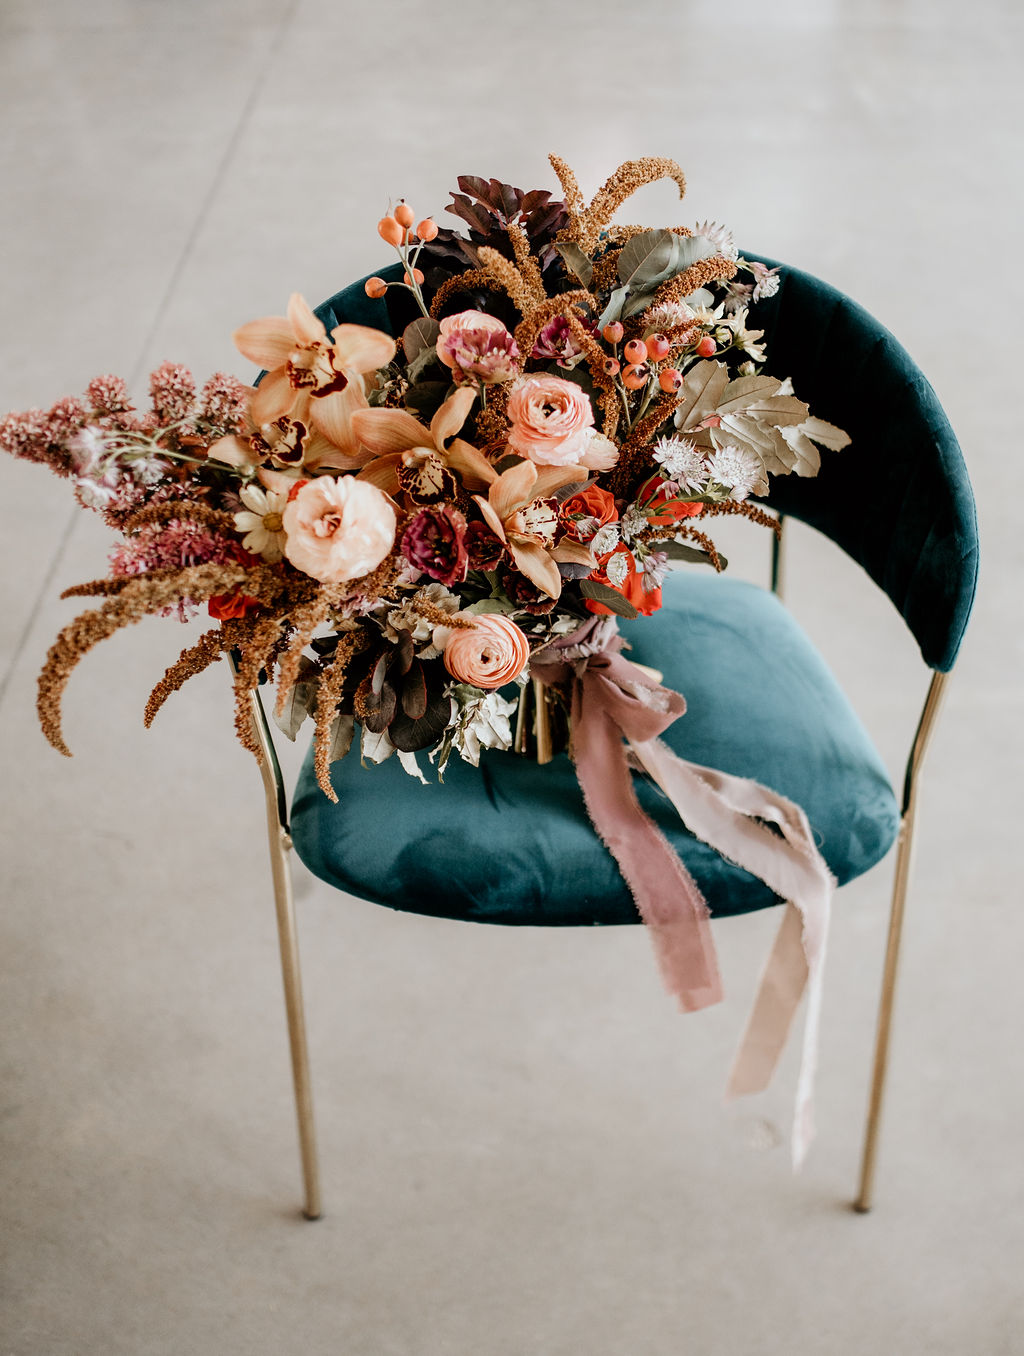 Large colorful wedding bouquet on velvet chair